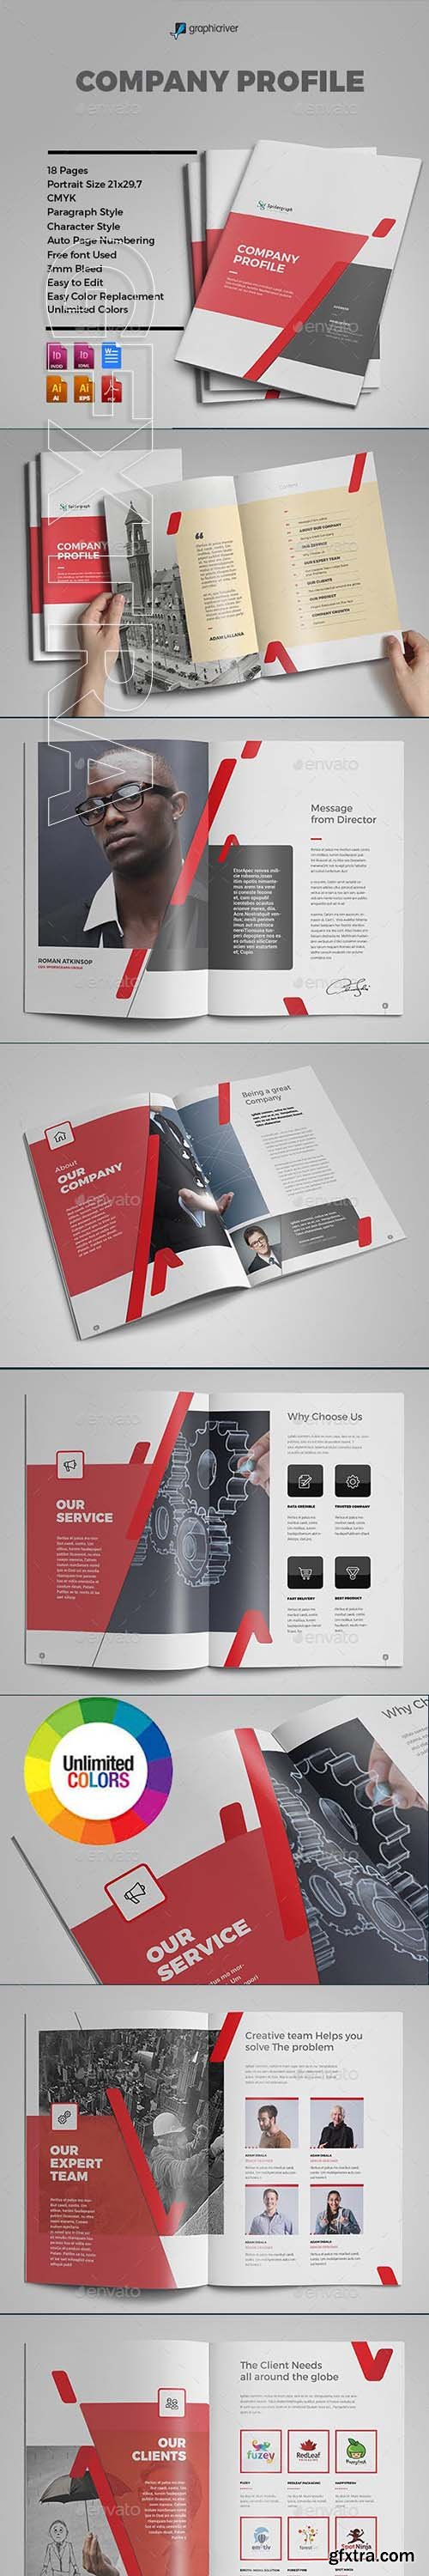 GraphicRiver - Company Profile 22949304